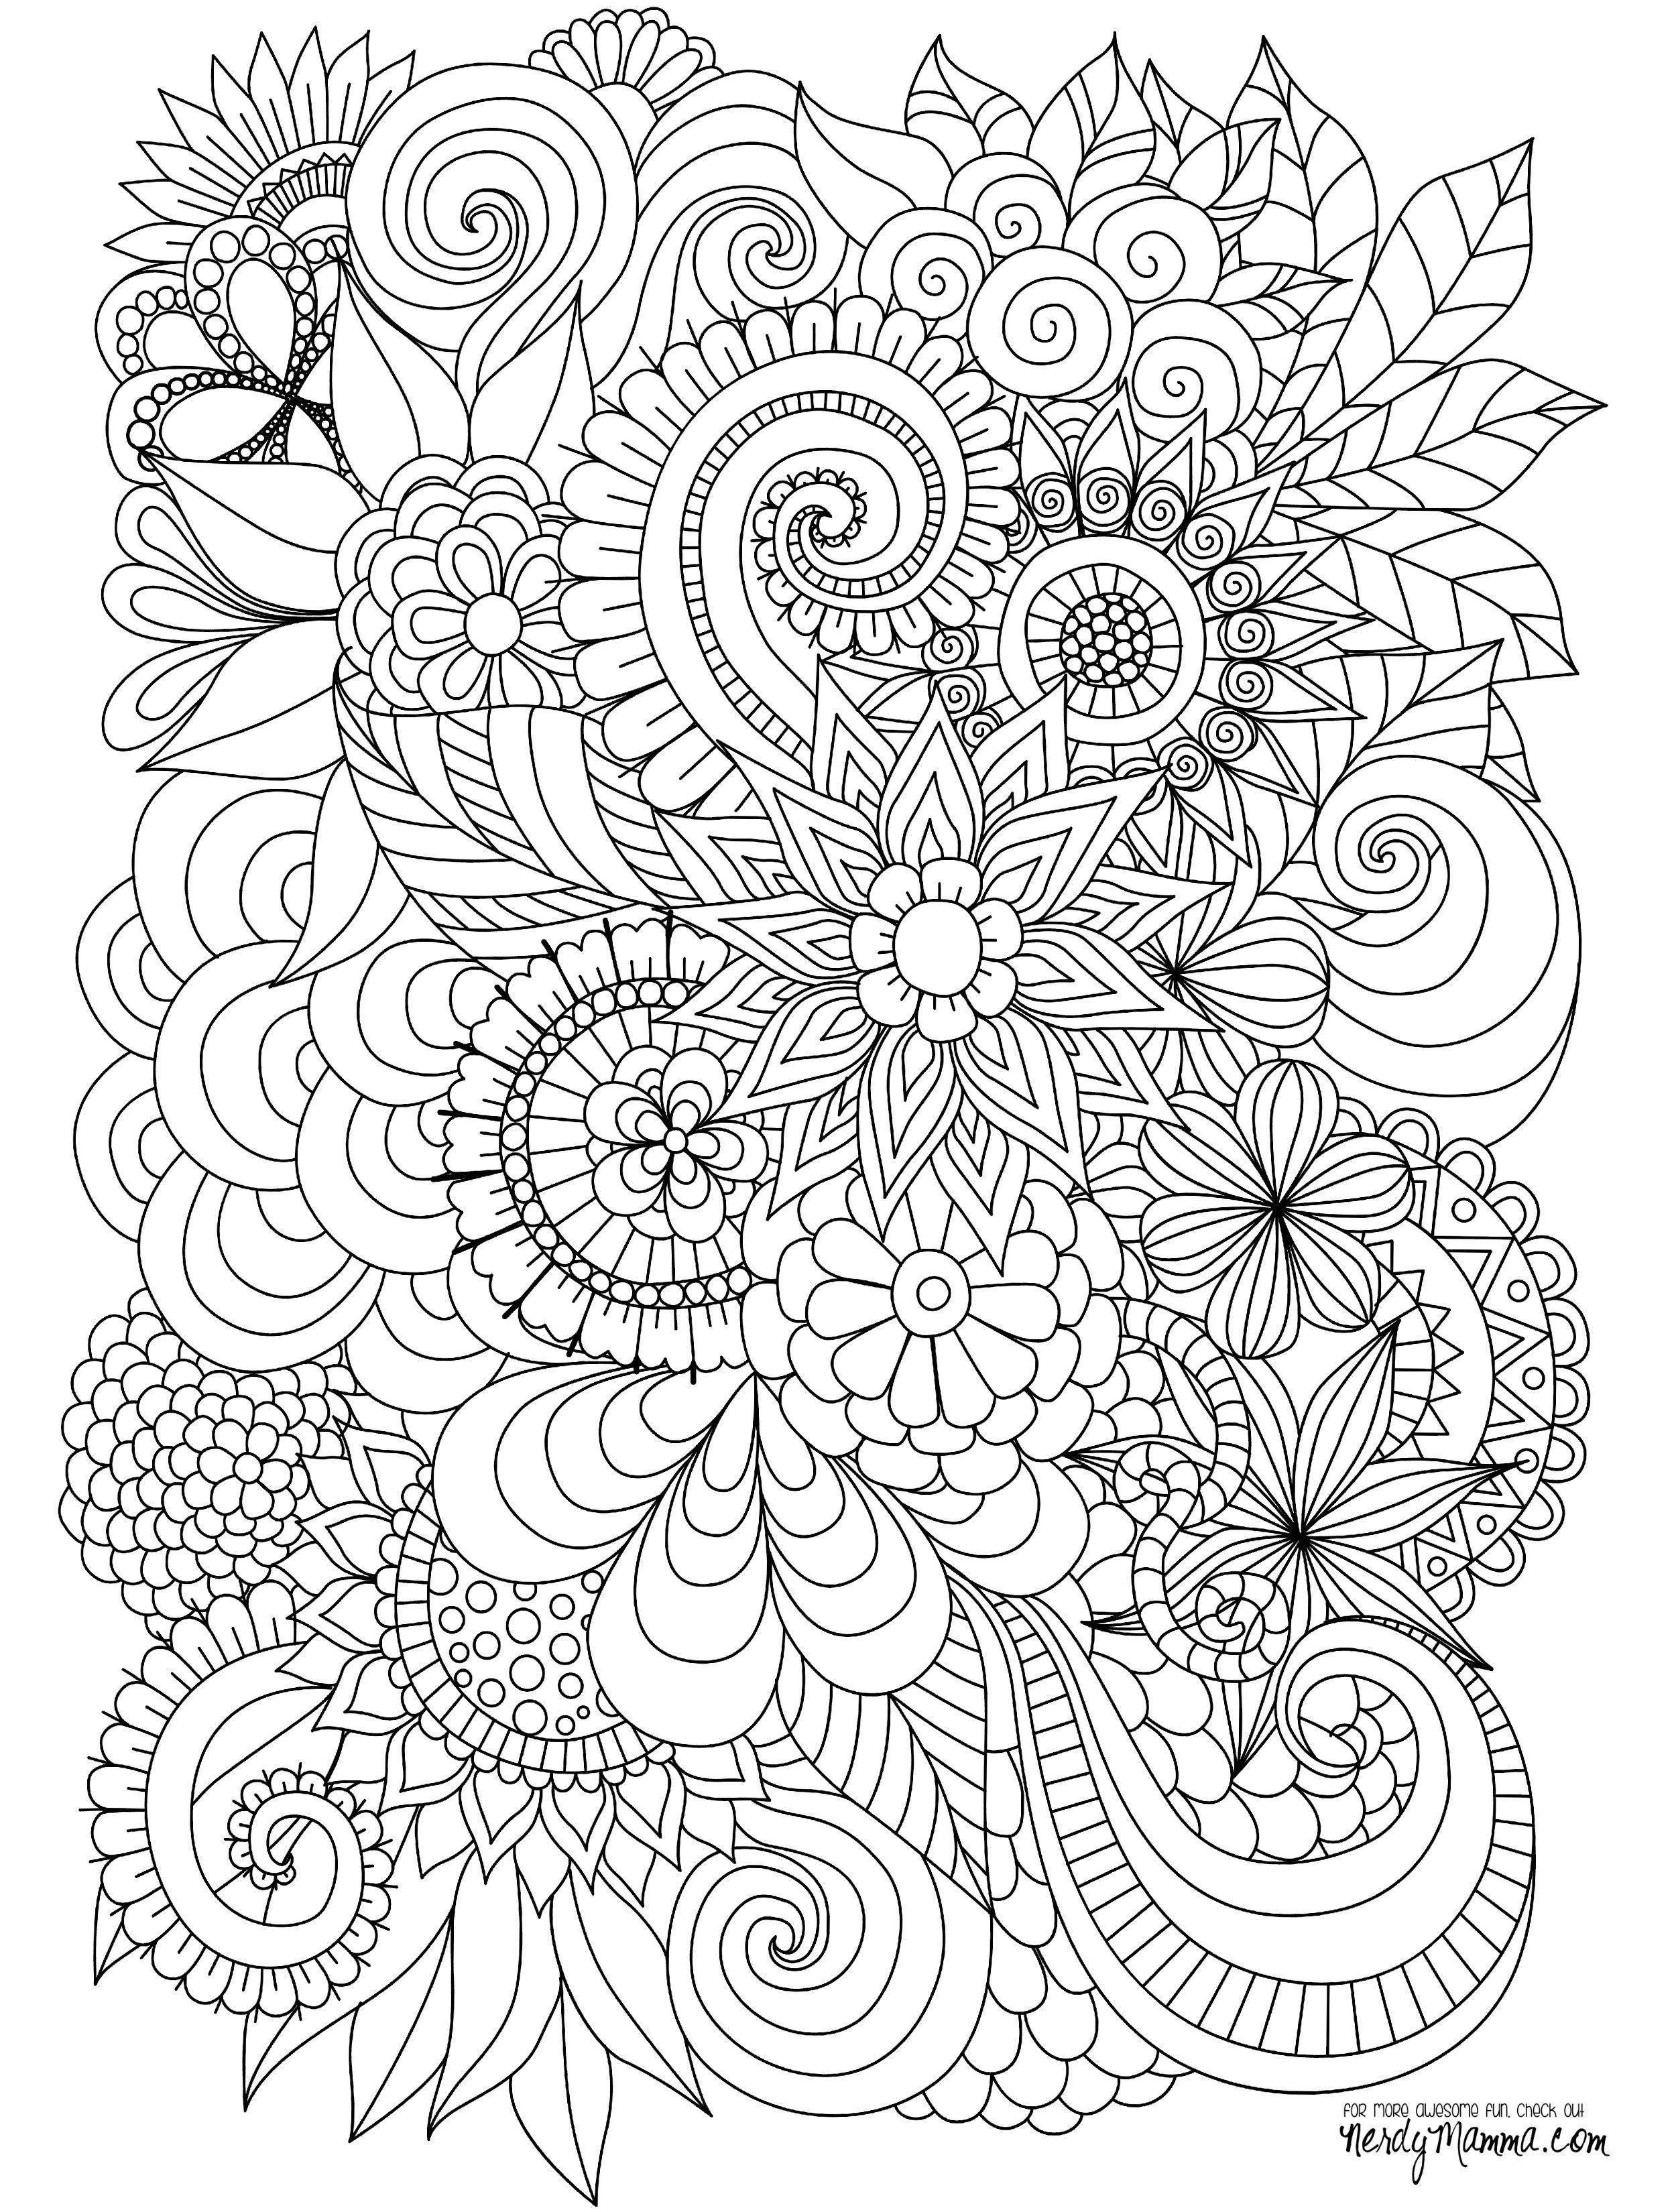 Poster Coloring Pages  Collection 6q - To print for your project